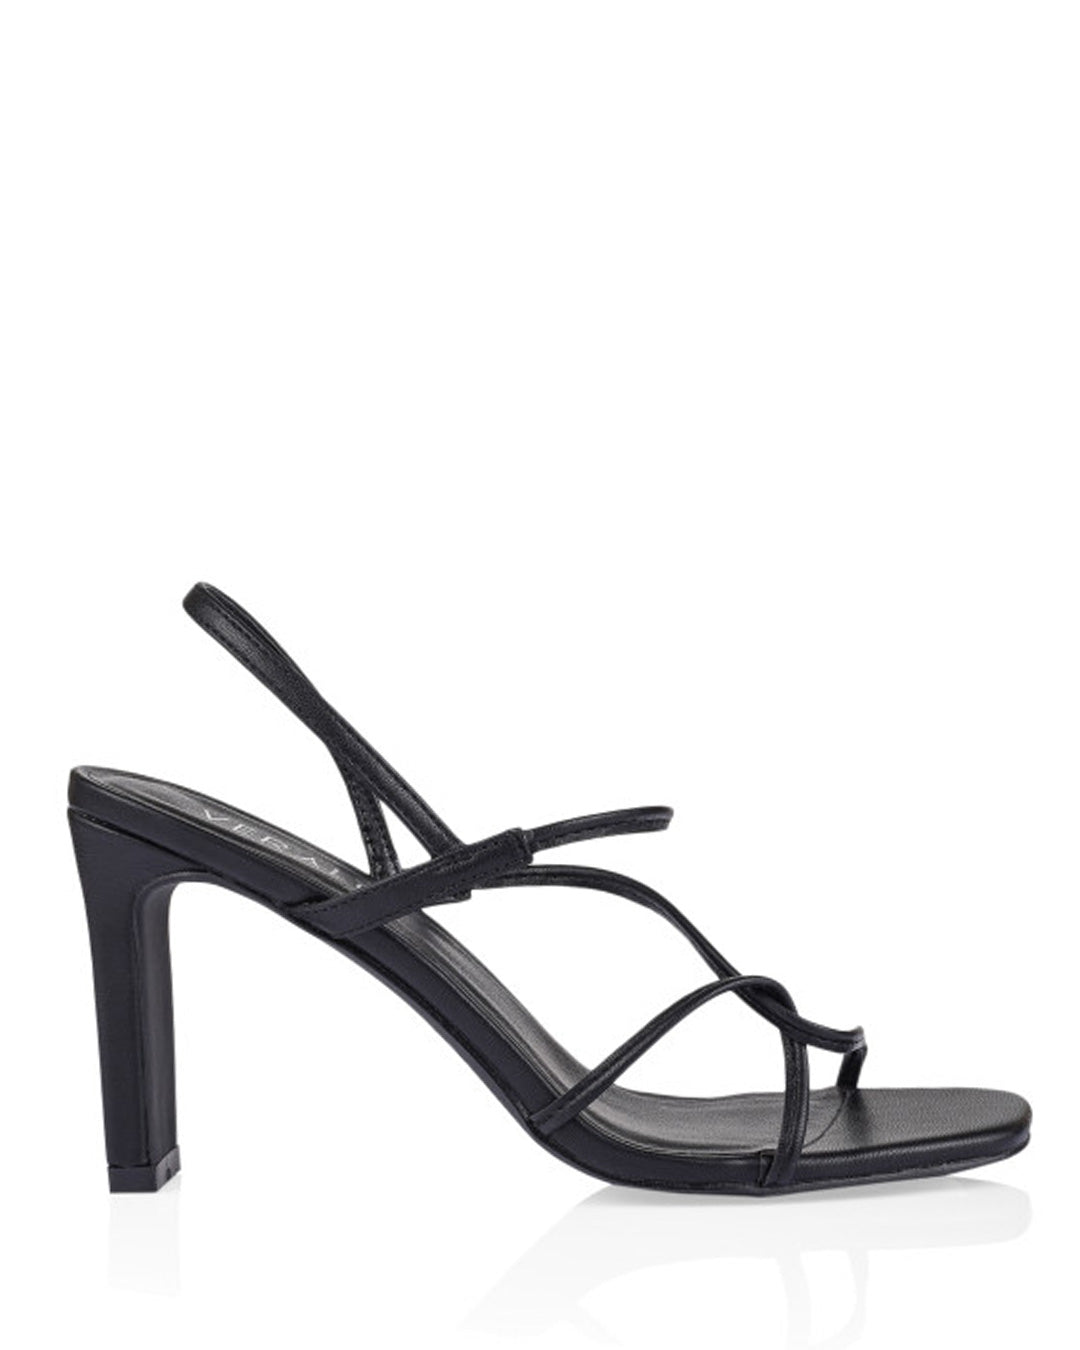 Kingston Heels - Black